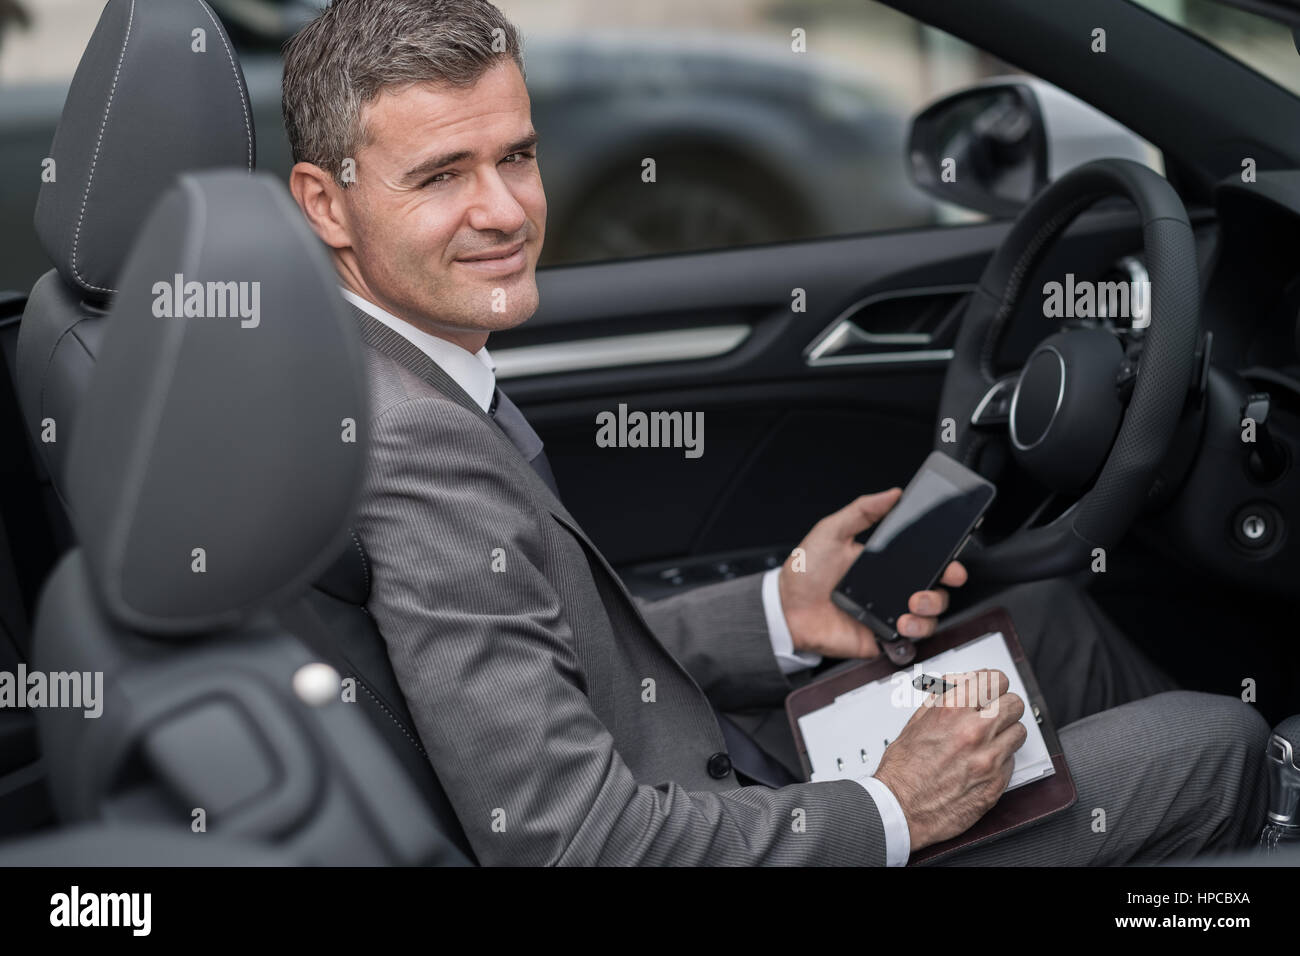 Businessman sitting in his car, he is planning and scheduling meetings on his organizer and using apps on his smartphone - Stock Image